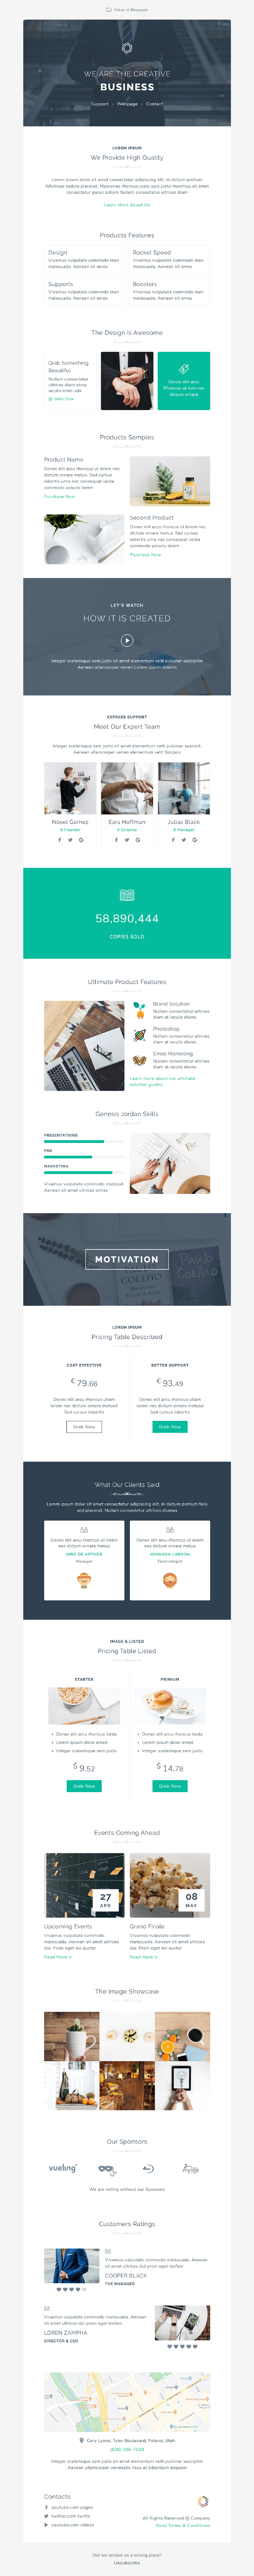 Mzone Responsive Newsletter Email Template For Business - 8